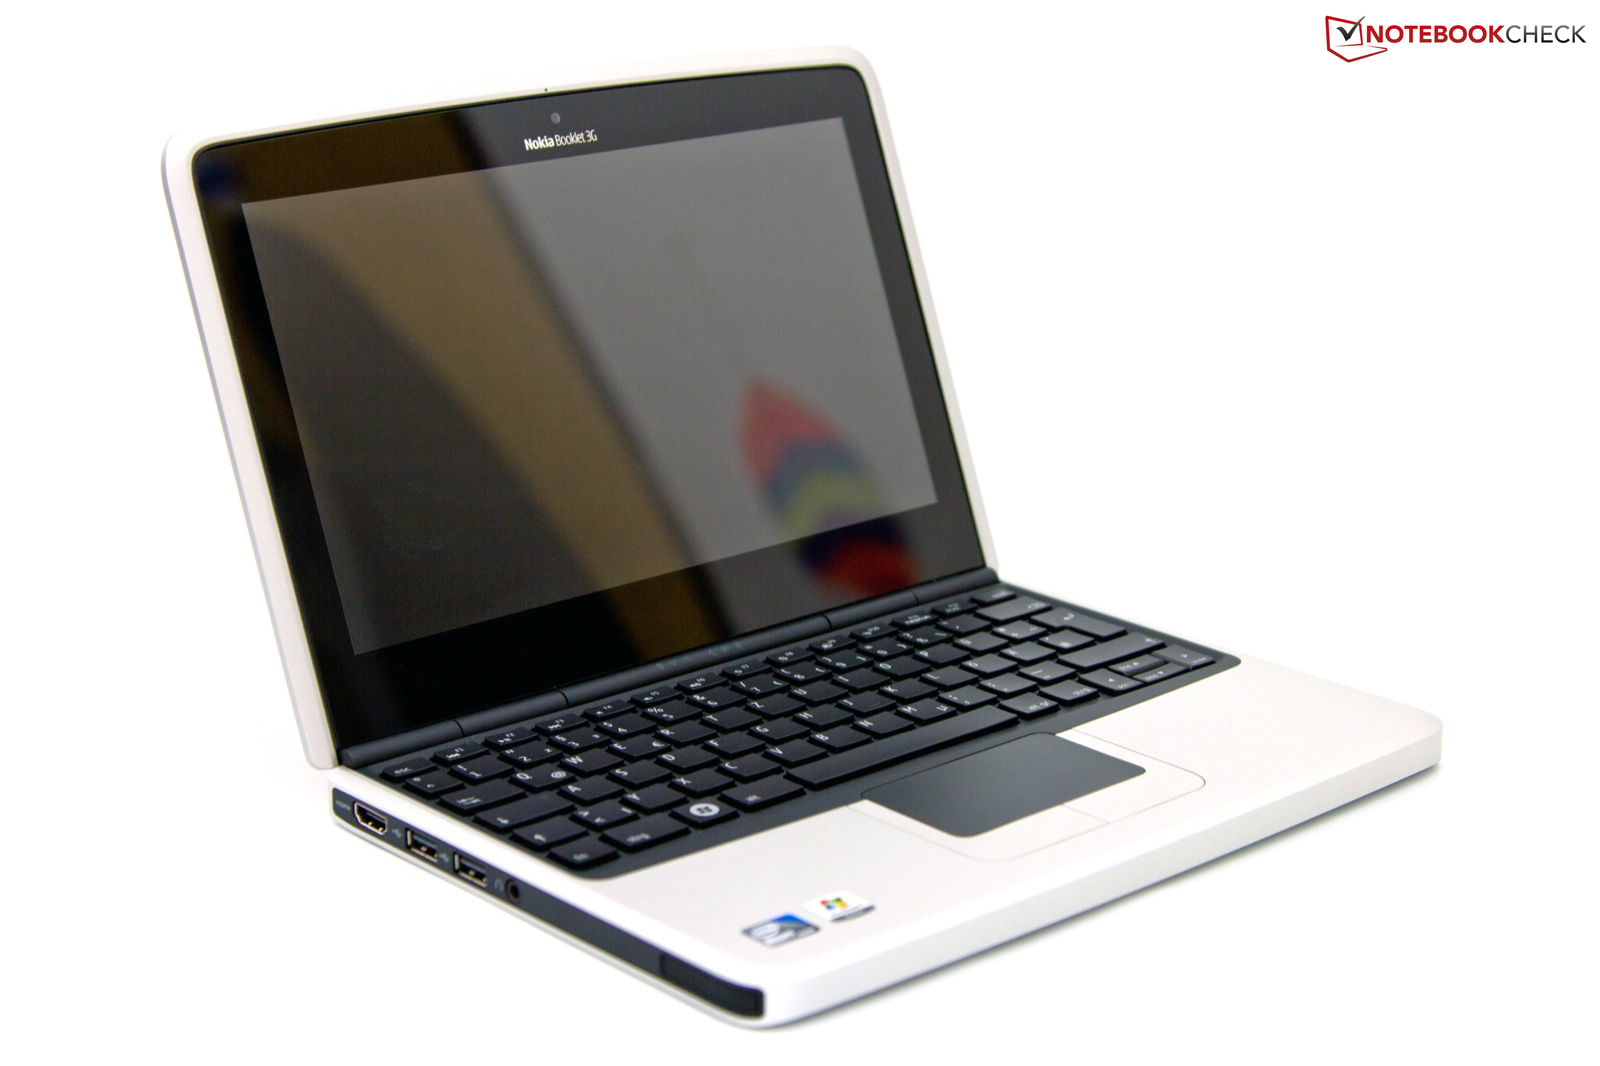 Review Nokia Booklet 3g Netbook Notebookcheck Net Reviews